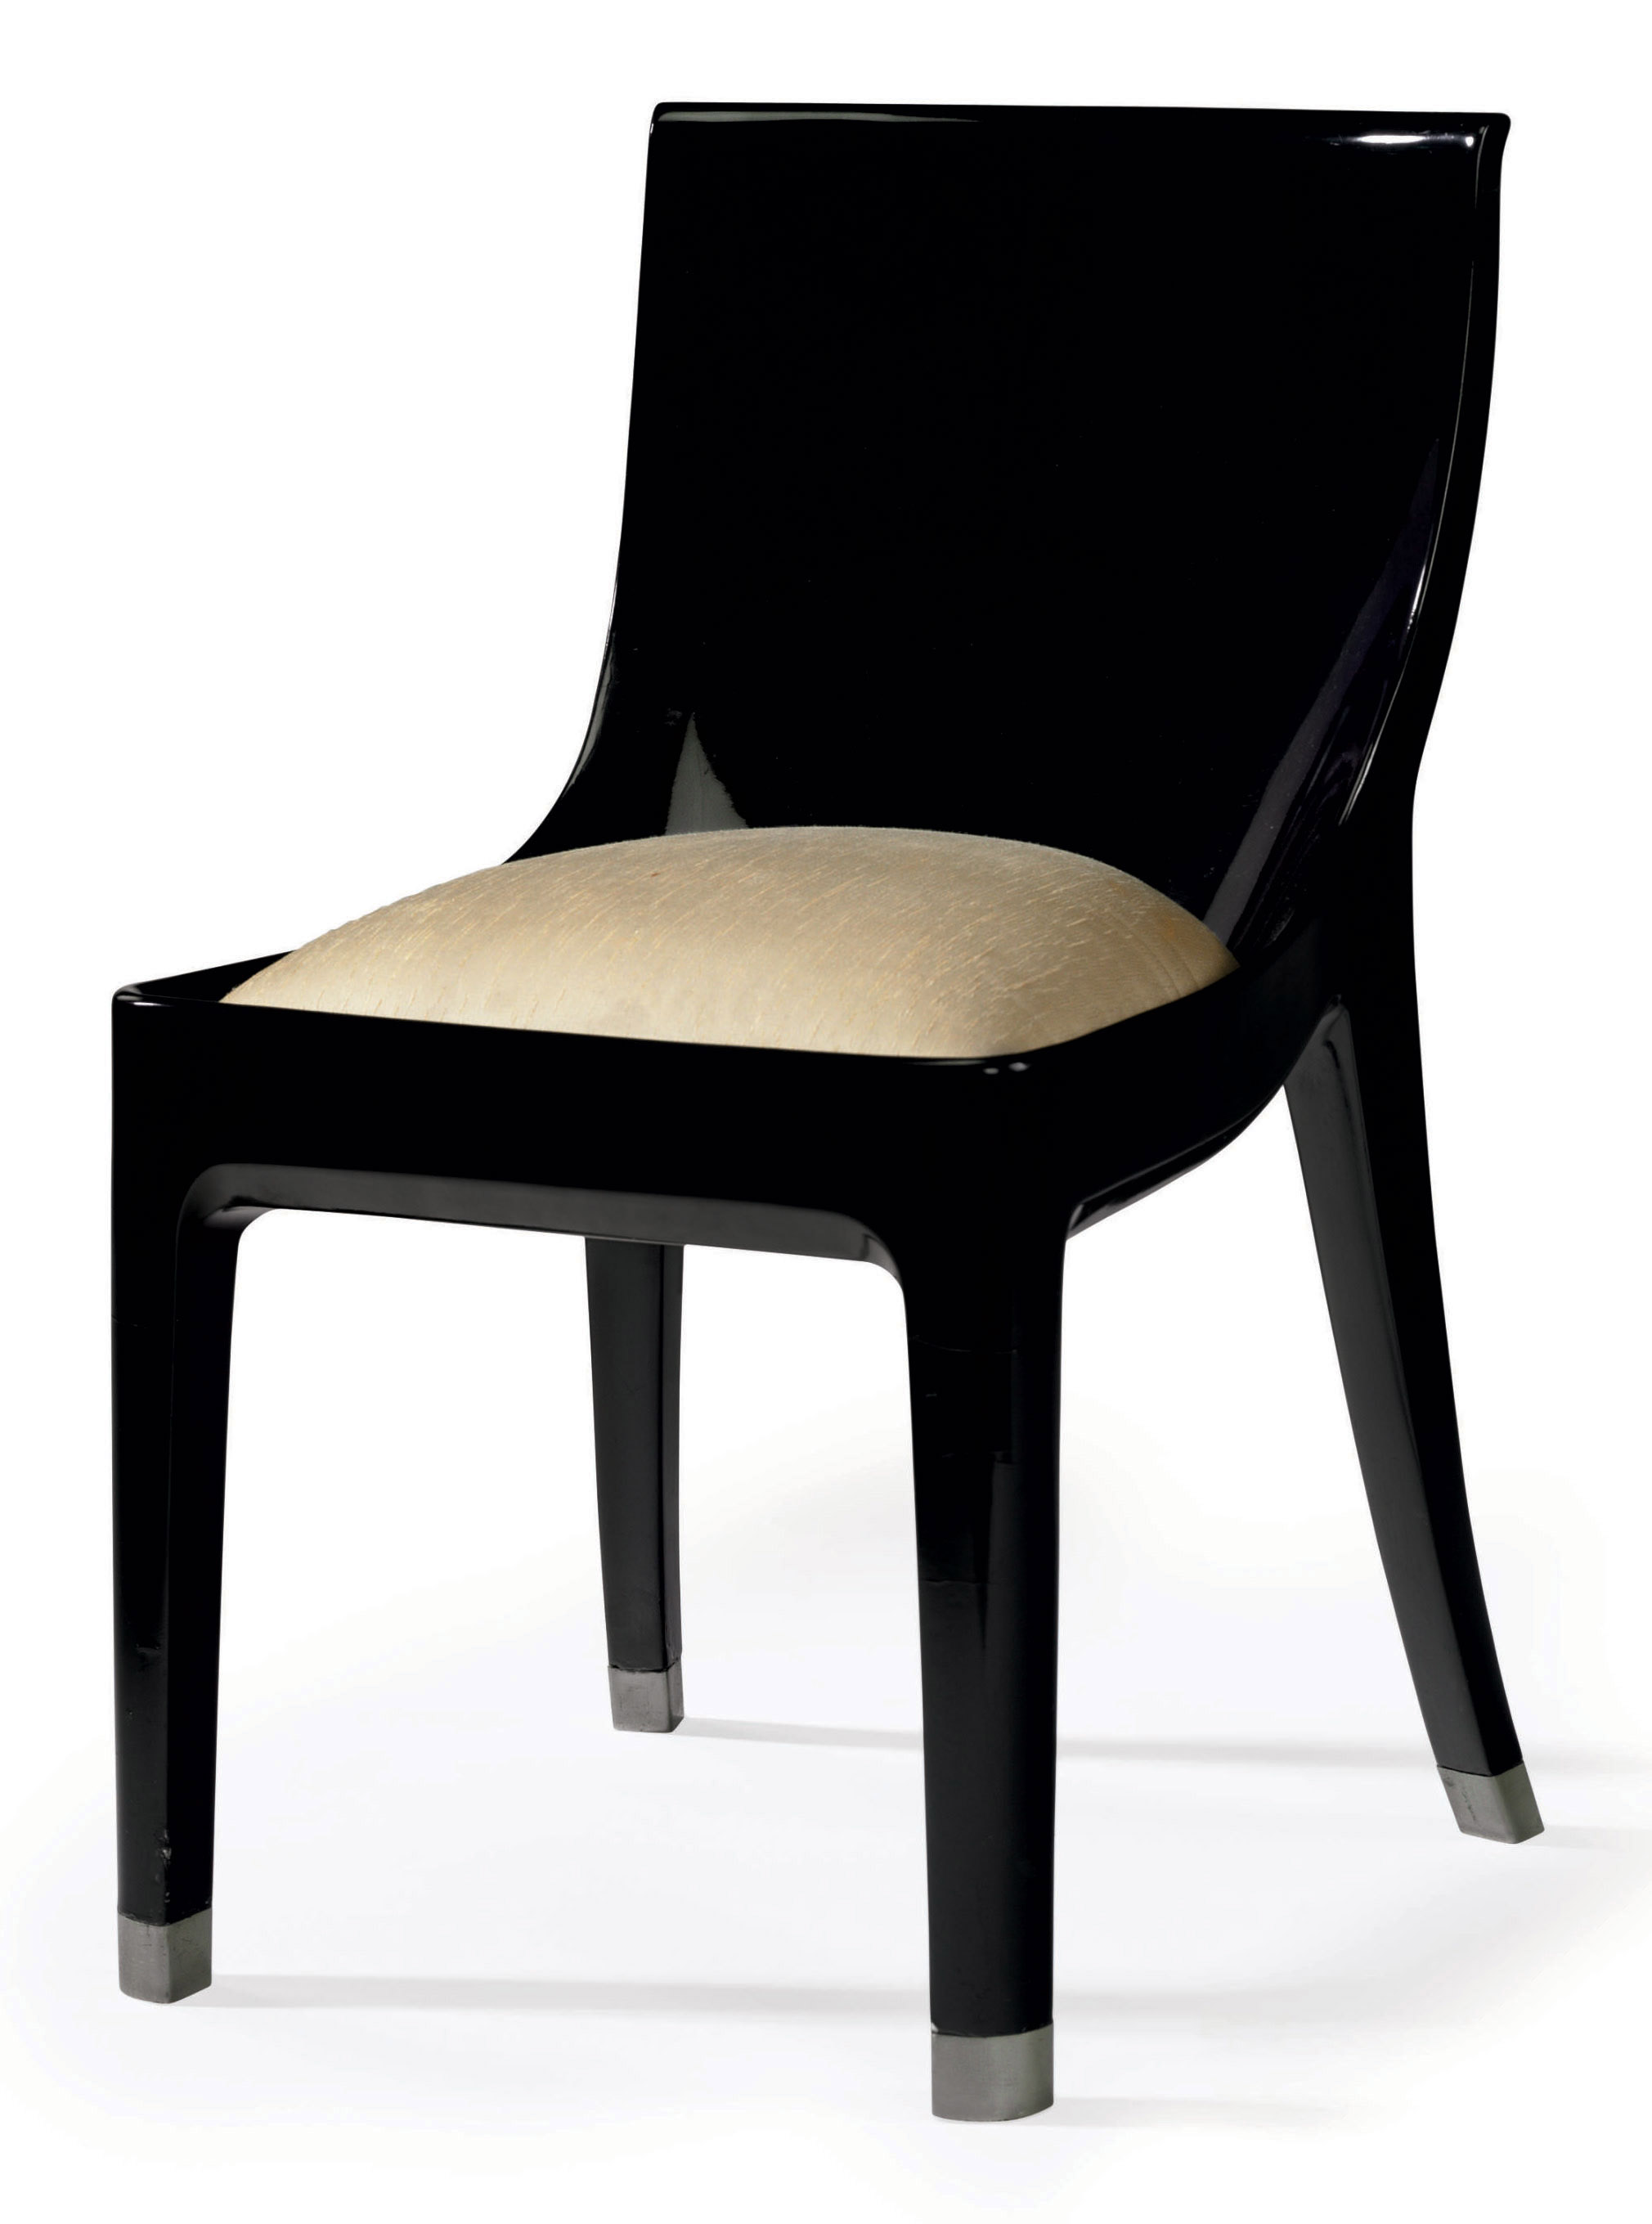 Composite Chairs Jean Dunand 1877 1942 A Lacquered Cast Stone Composite